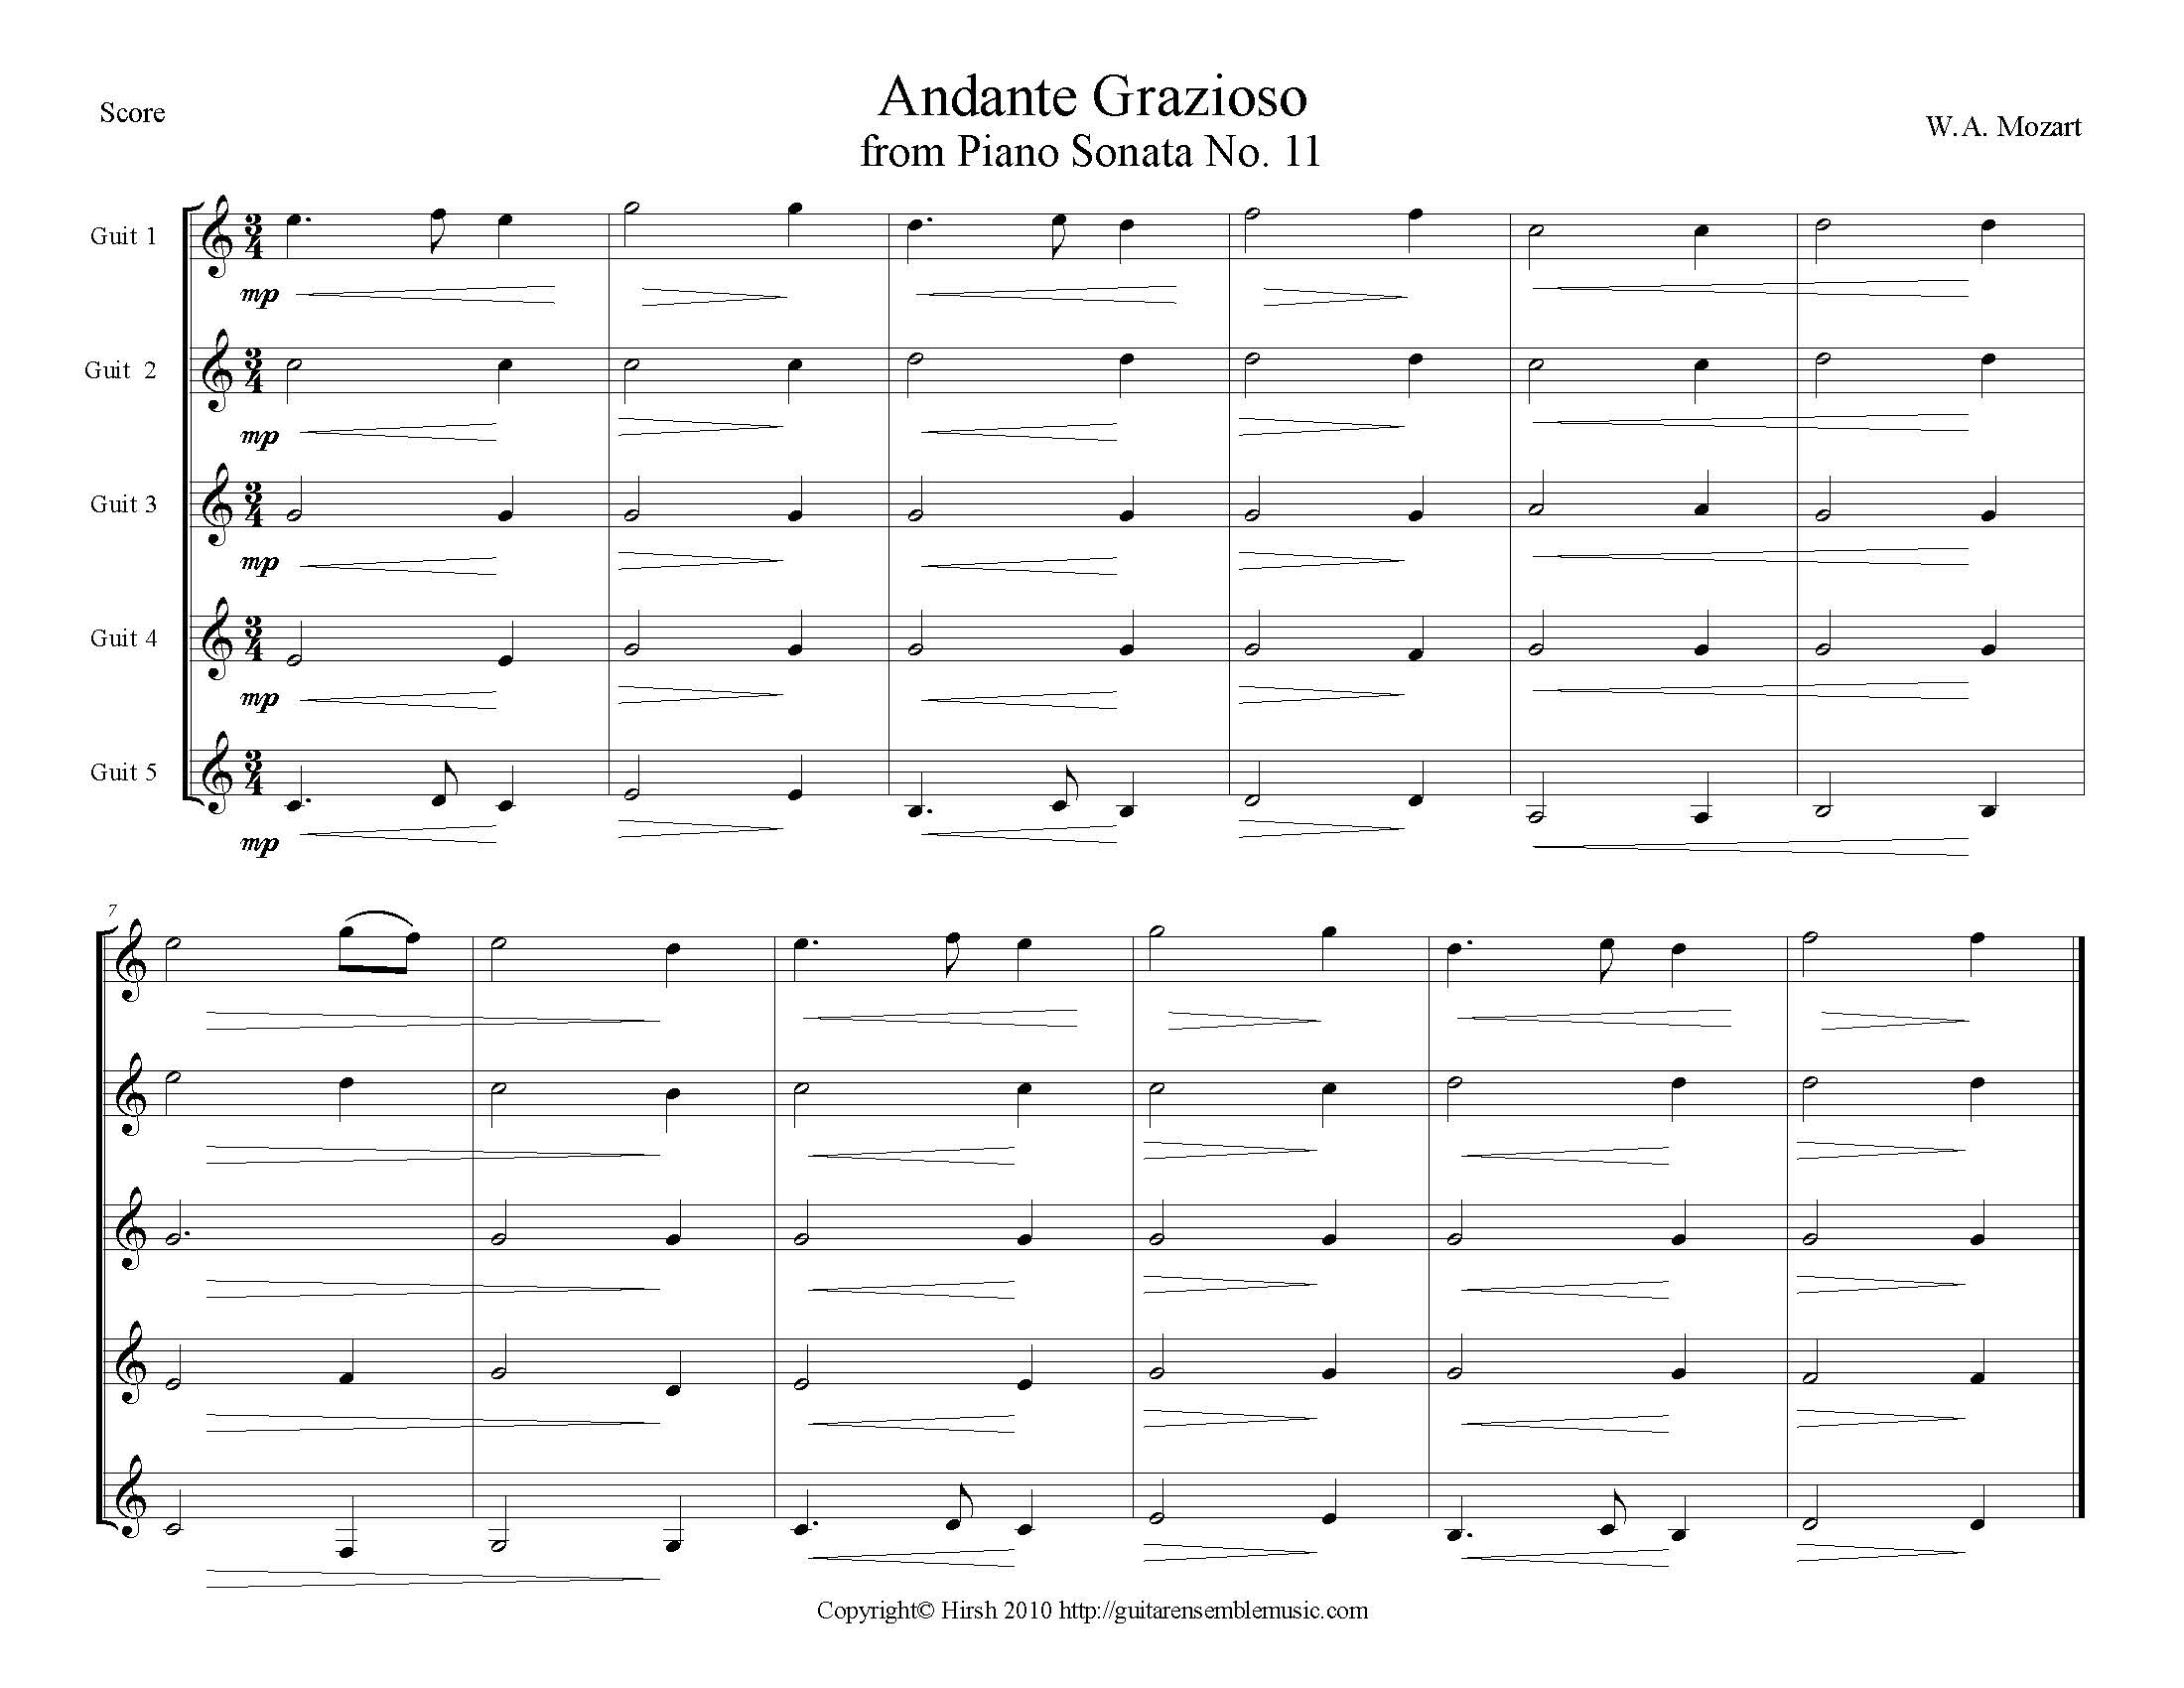 More Notated Music like this